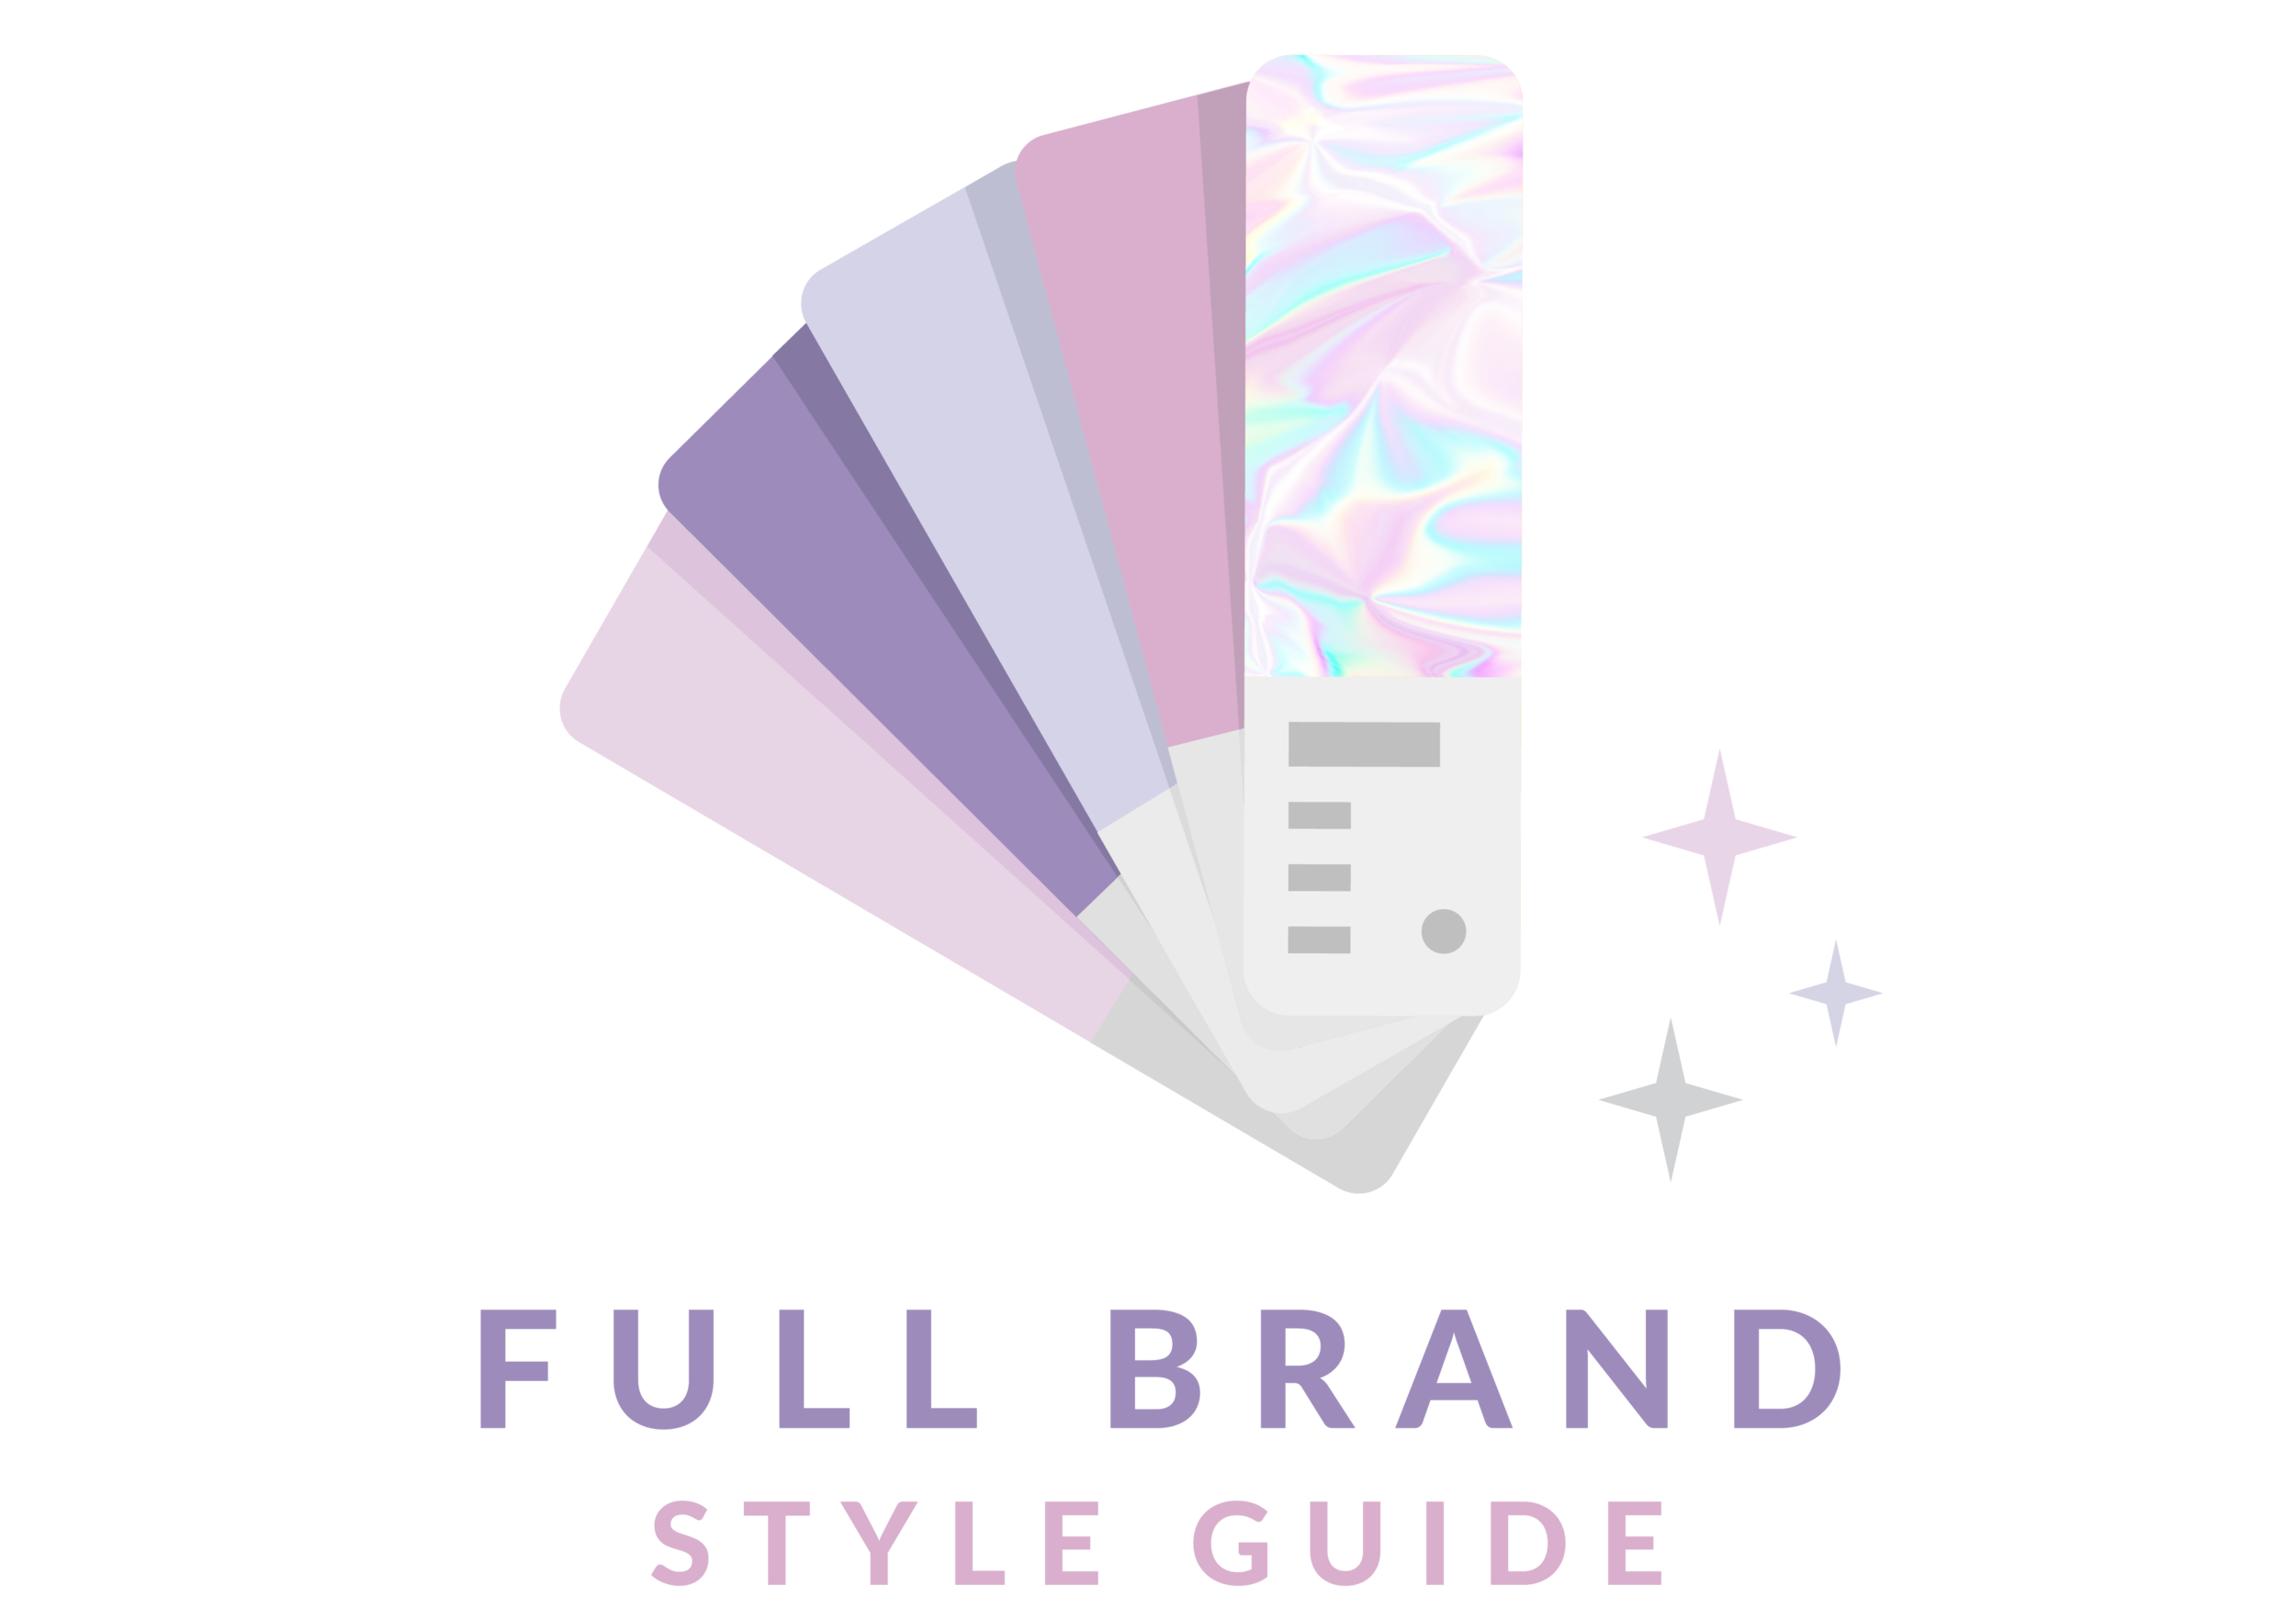 Full brand style guide for artists